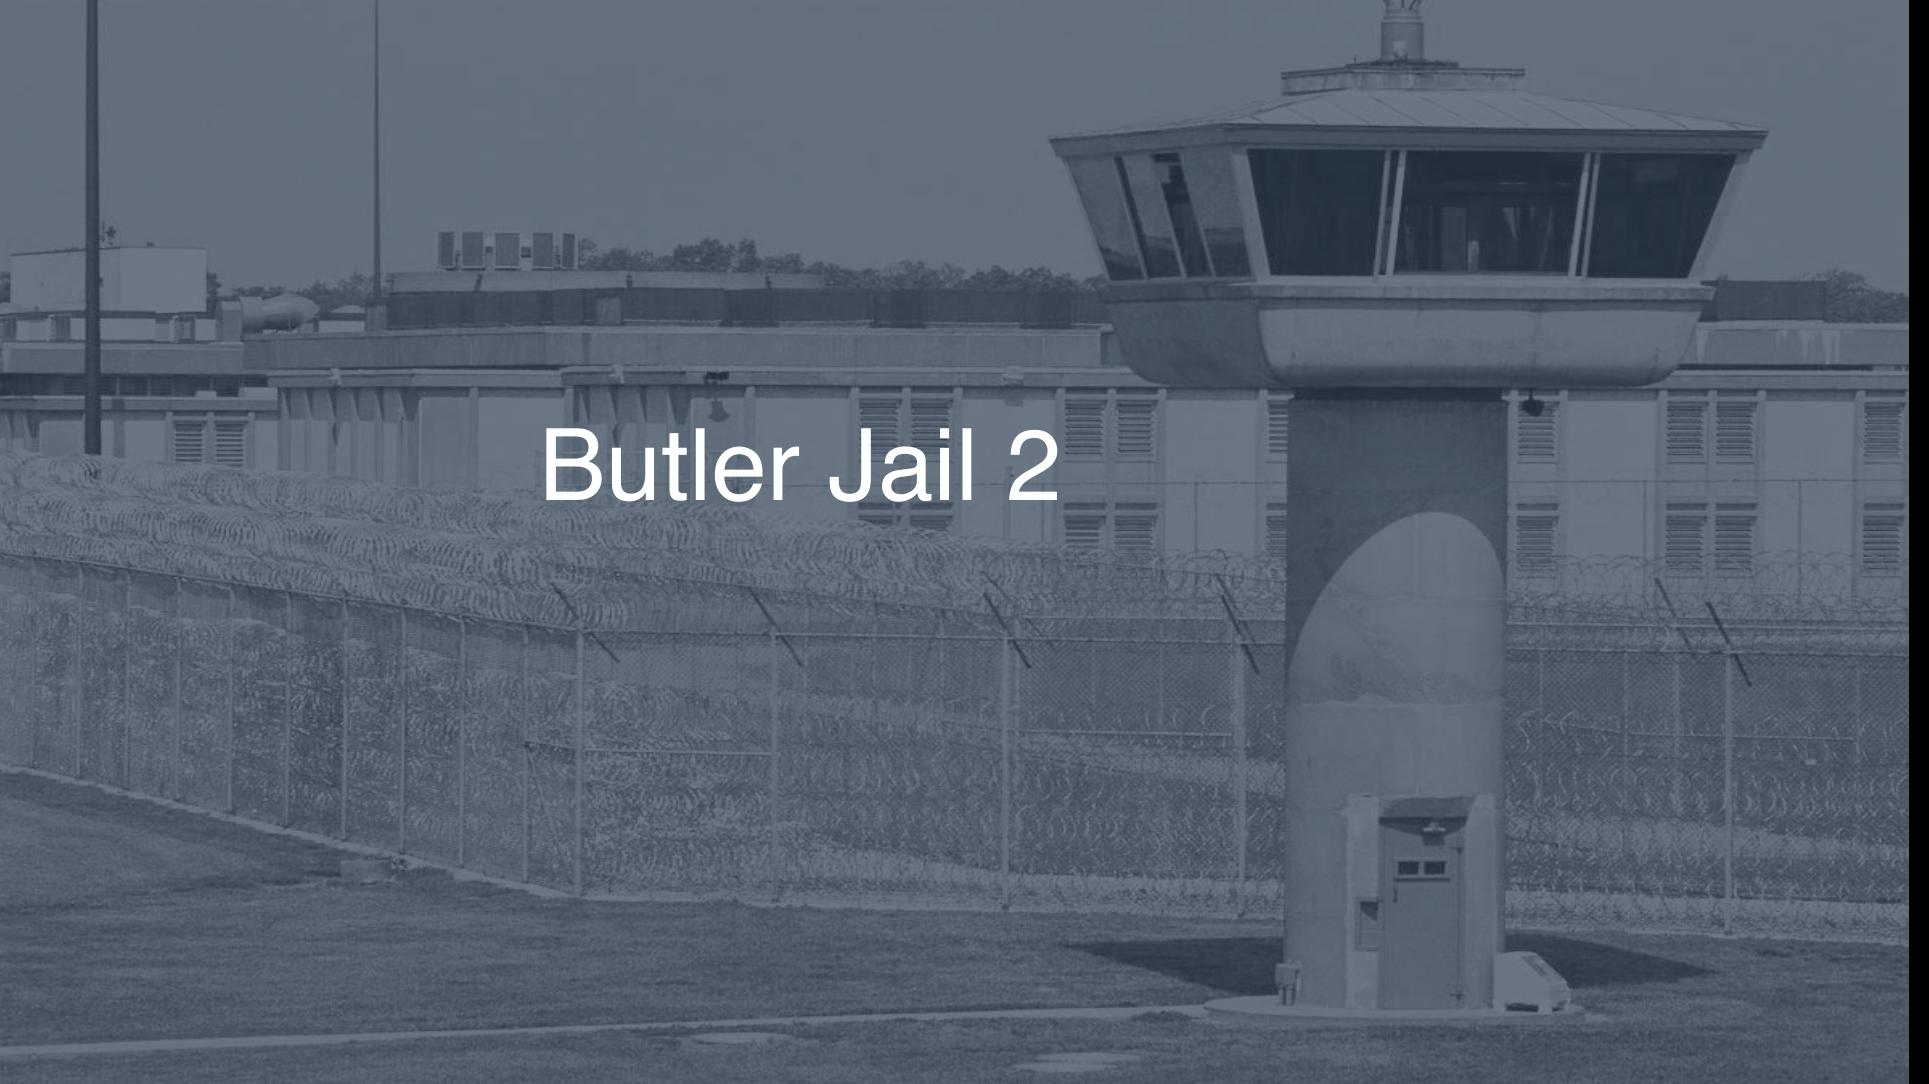 Butler Jail correctional facility picture